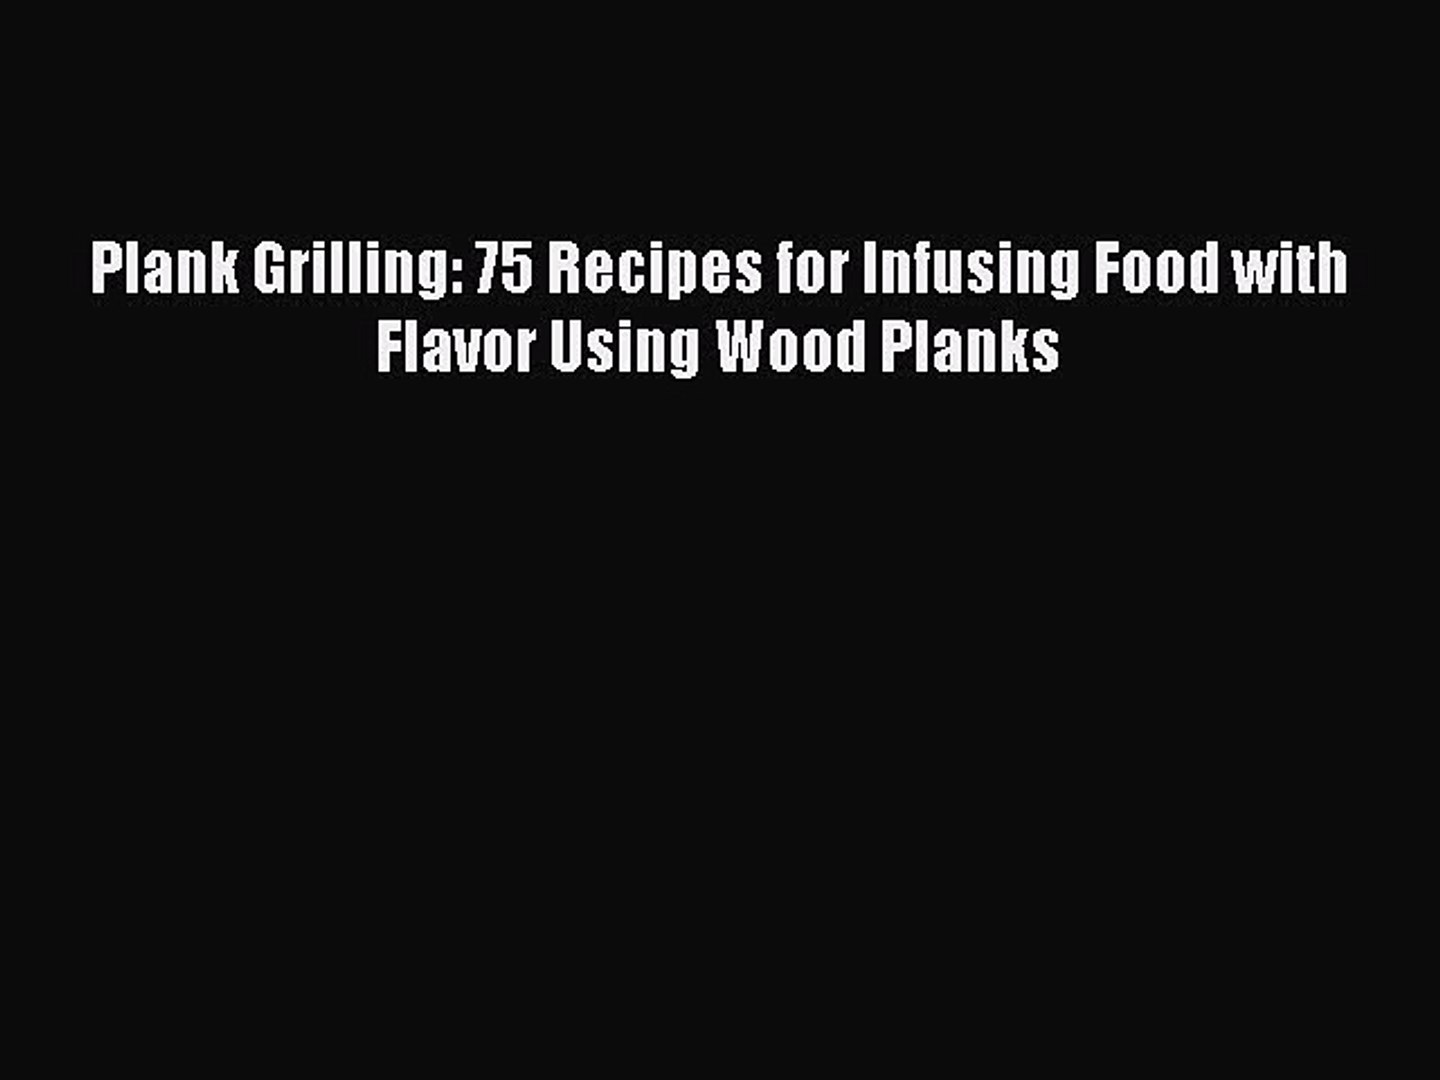 Download Plank Grilling: 75 Recipes for Infusing Food with Flavor Using Wood Planks Ebook Free